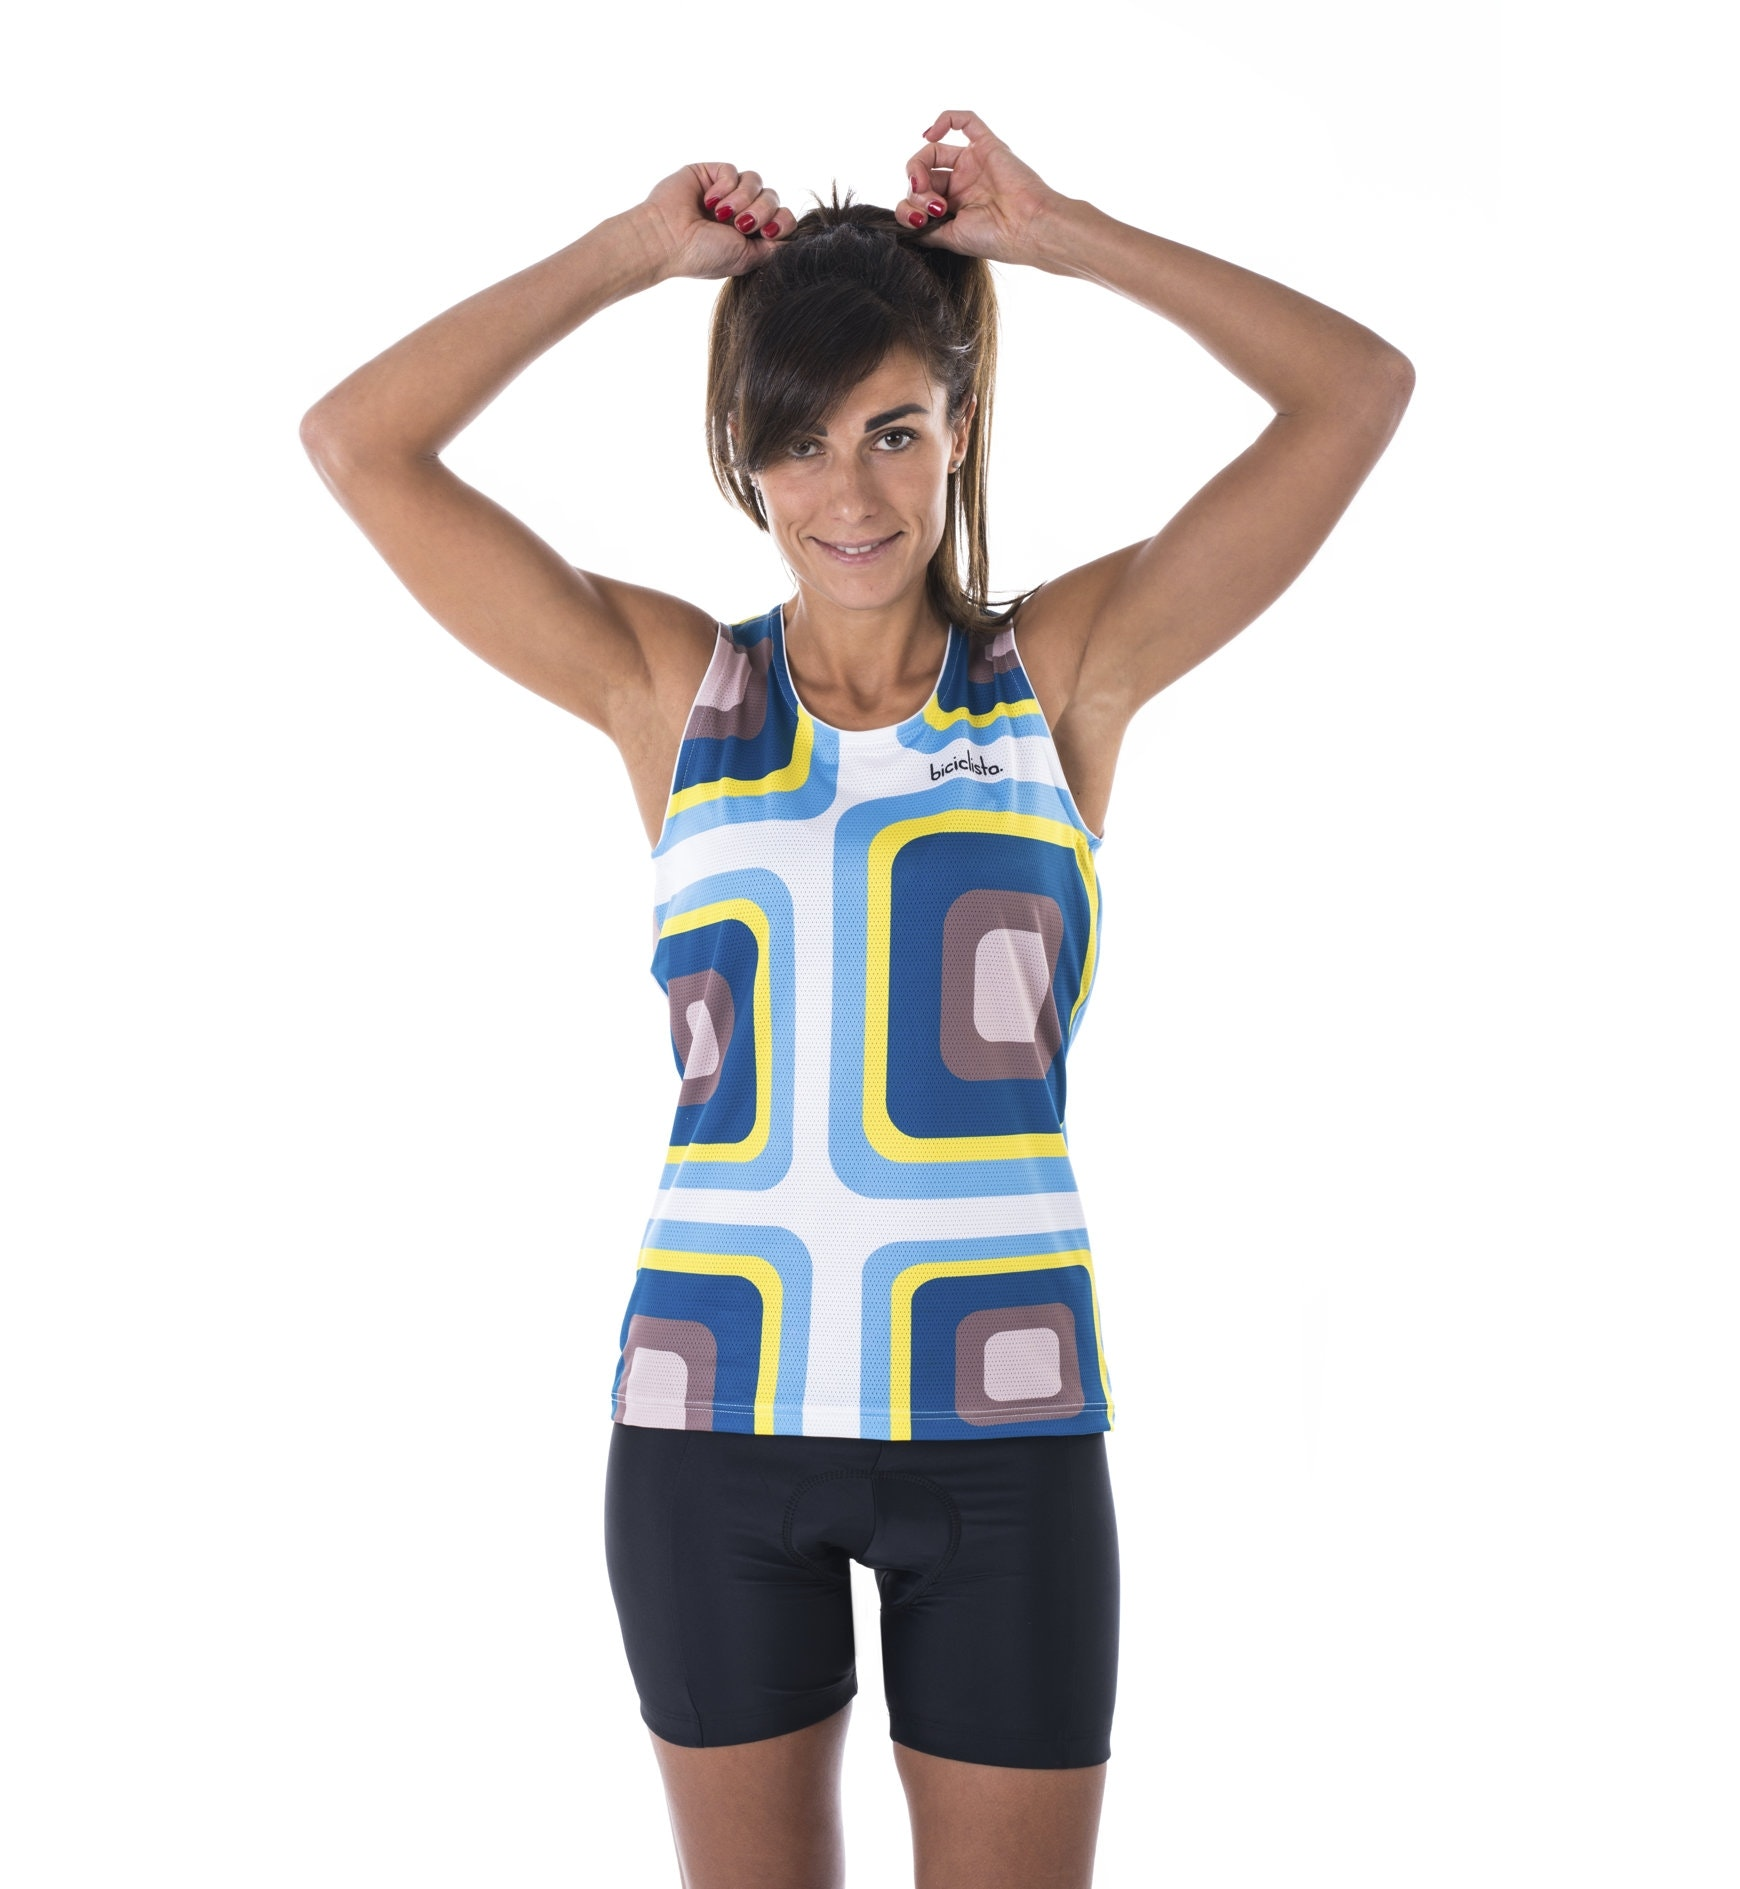 Biciclista Holliwood Party - top bici - donna